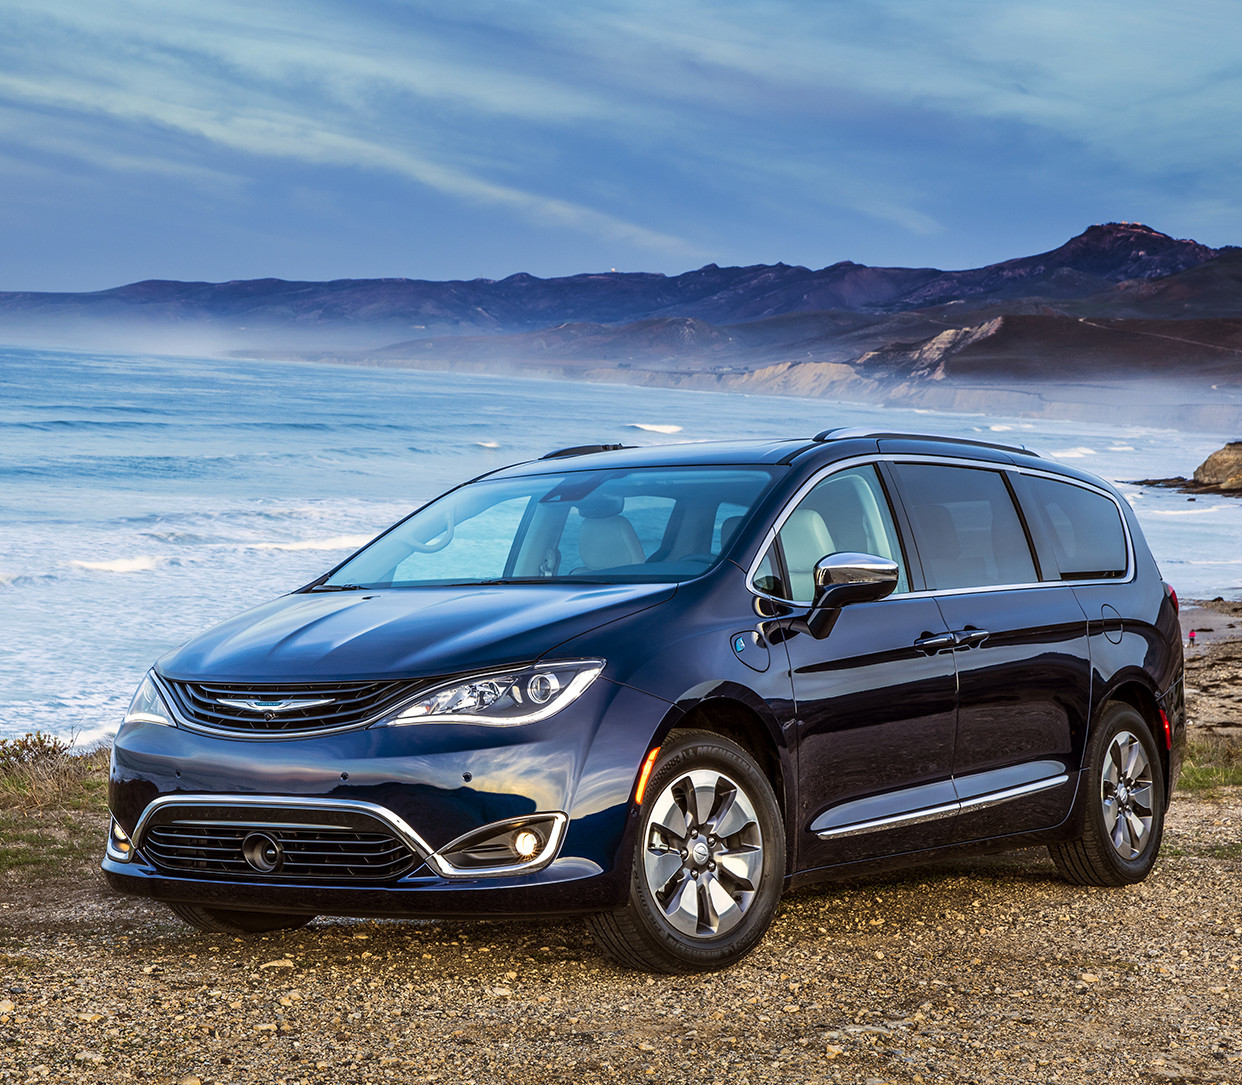 Blue Chrysler Pacifica Hybrid Speeding Through the Plains